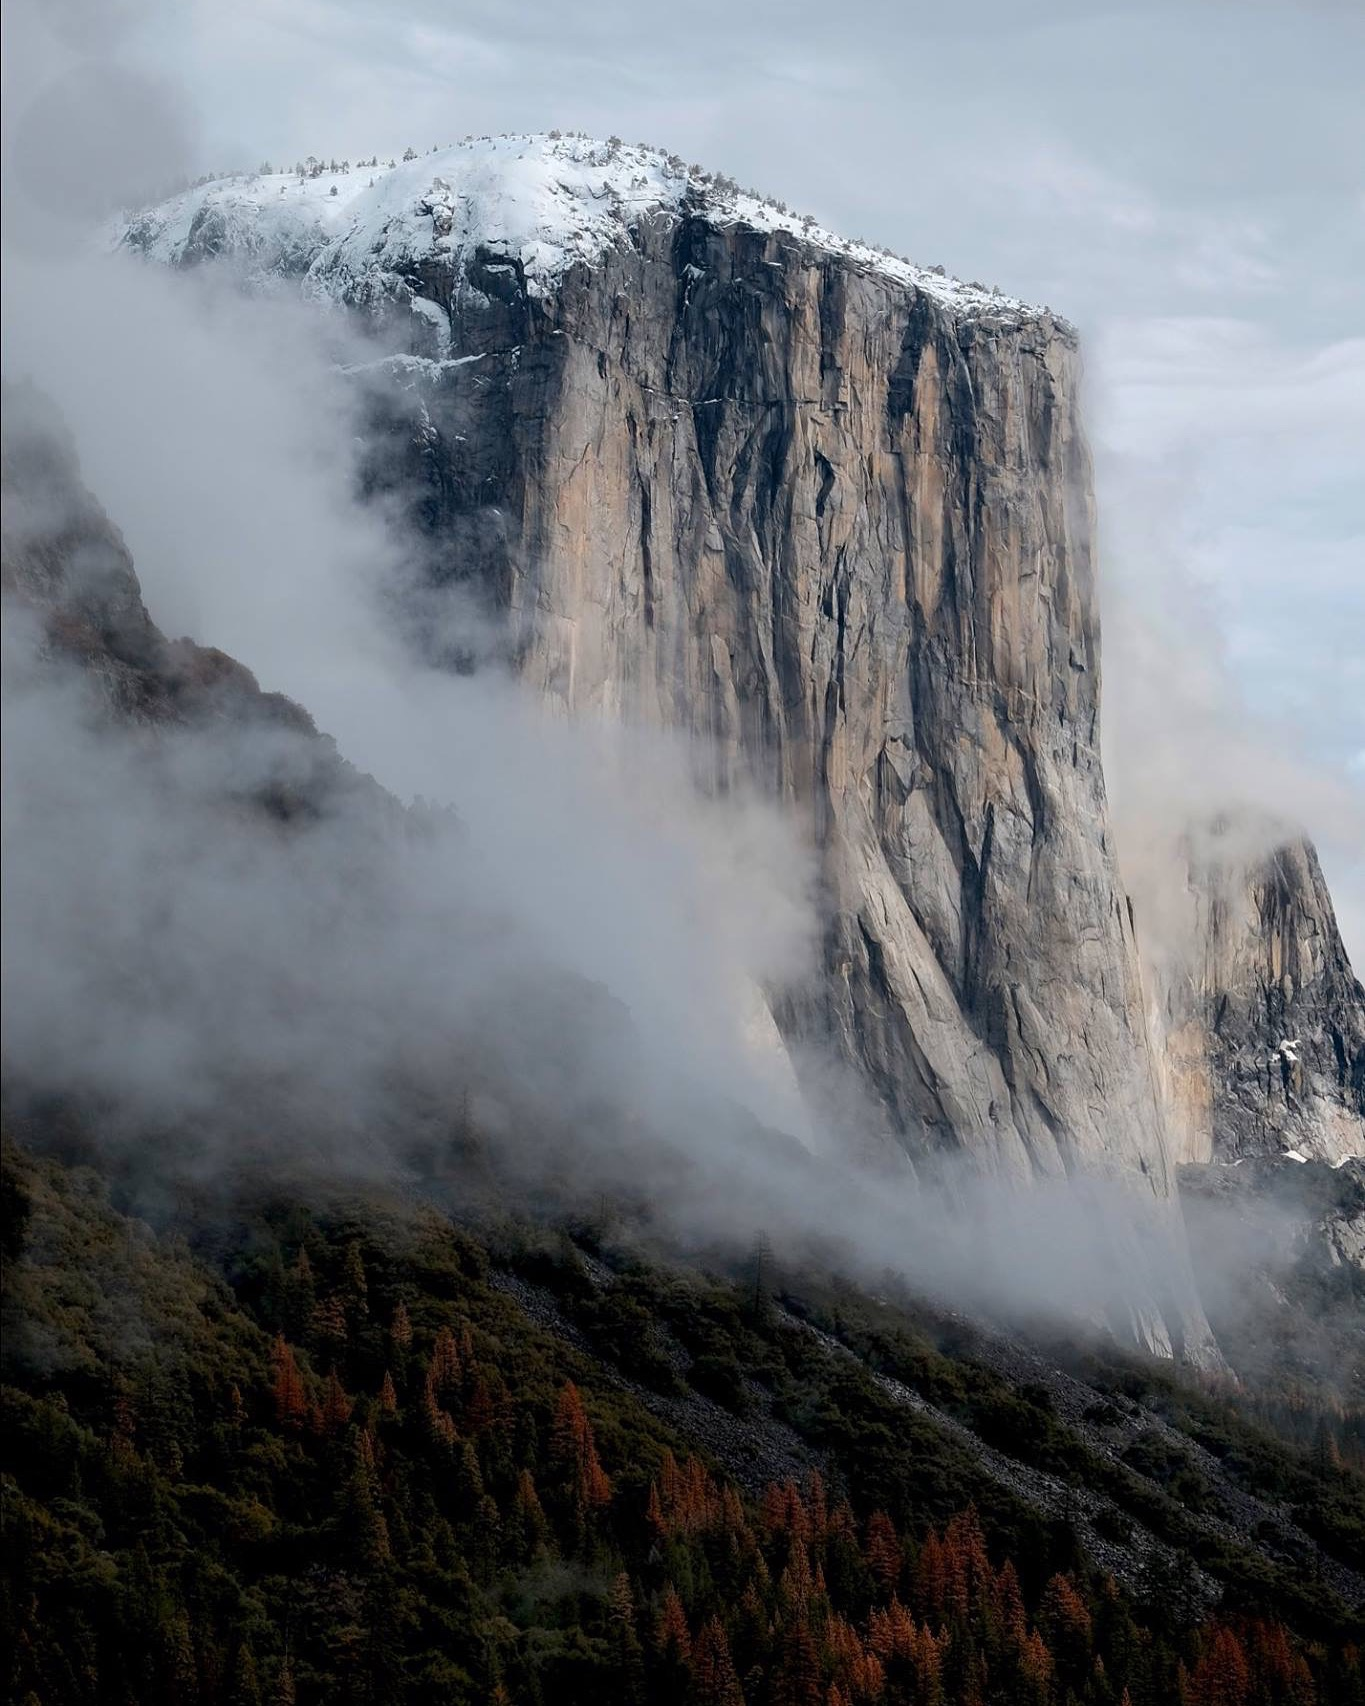 El Capitan, Yosemite National Park, Winter